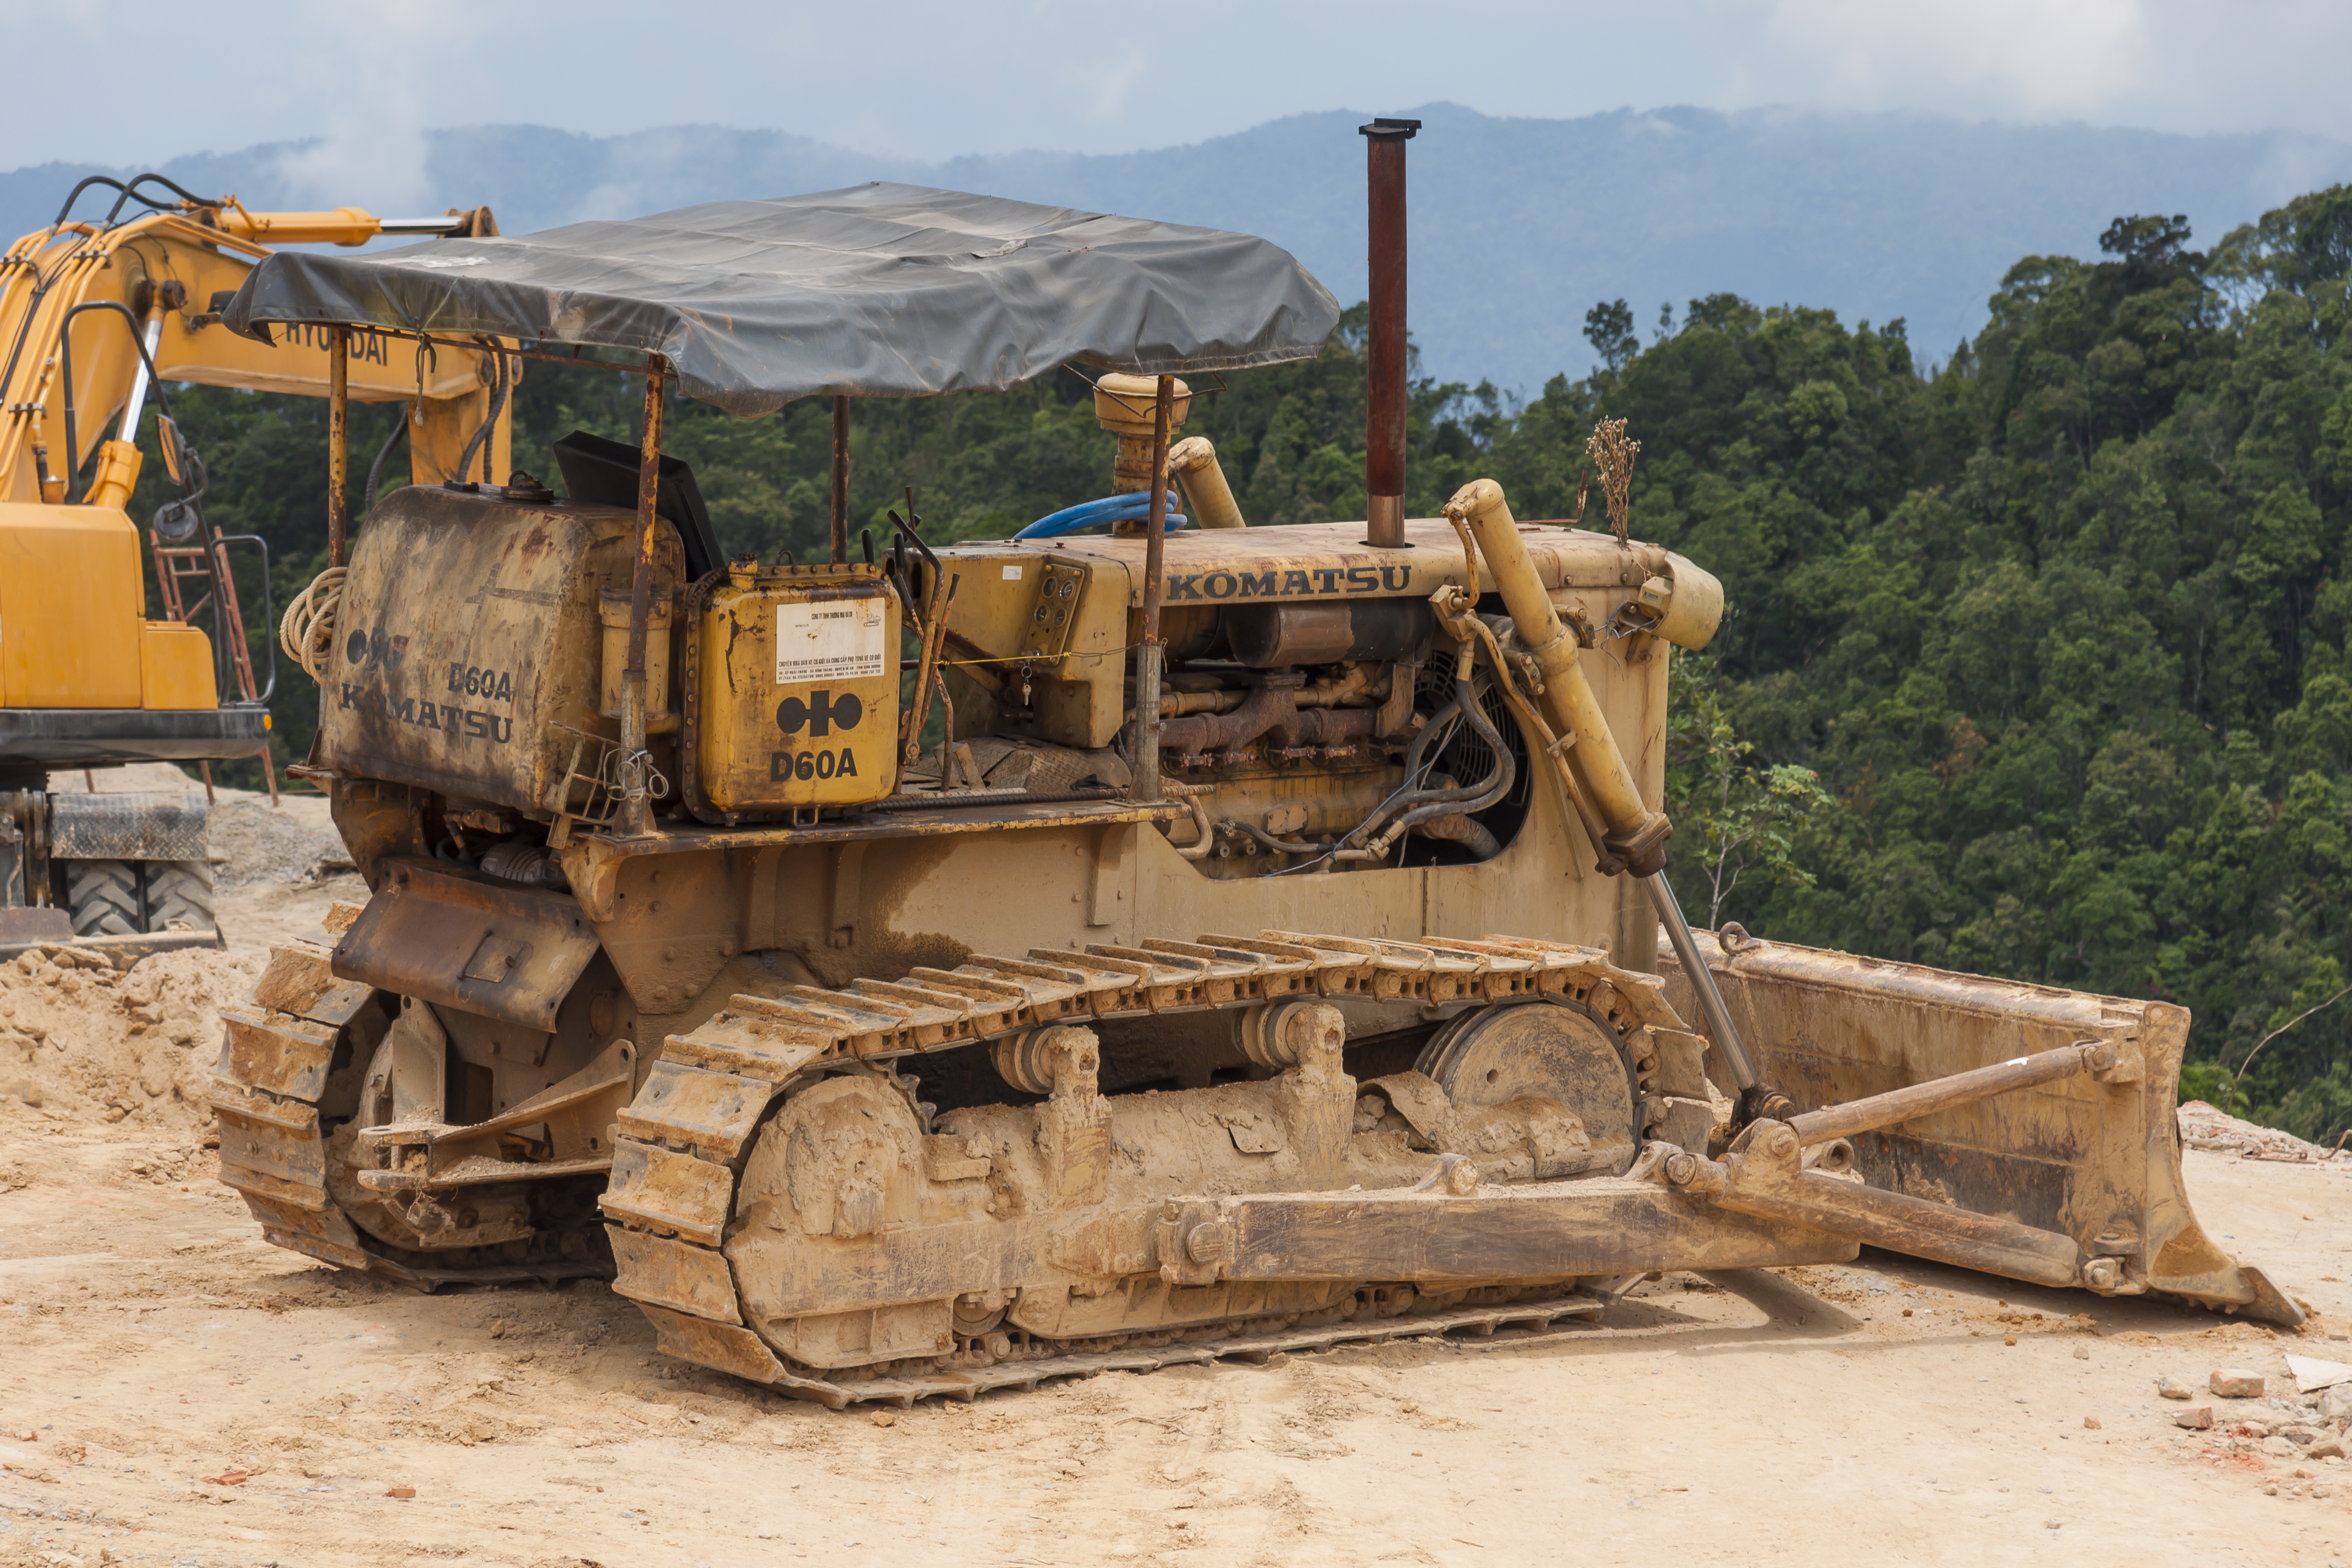 Testes - Anatomy Pictures and Information - Innerbody Pictures of a bulldozer